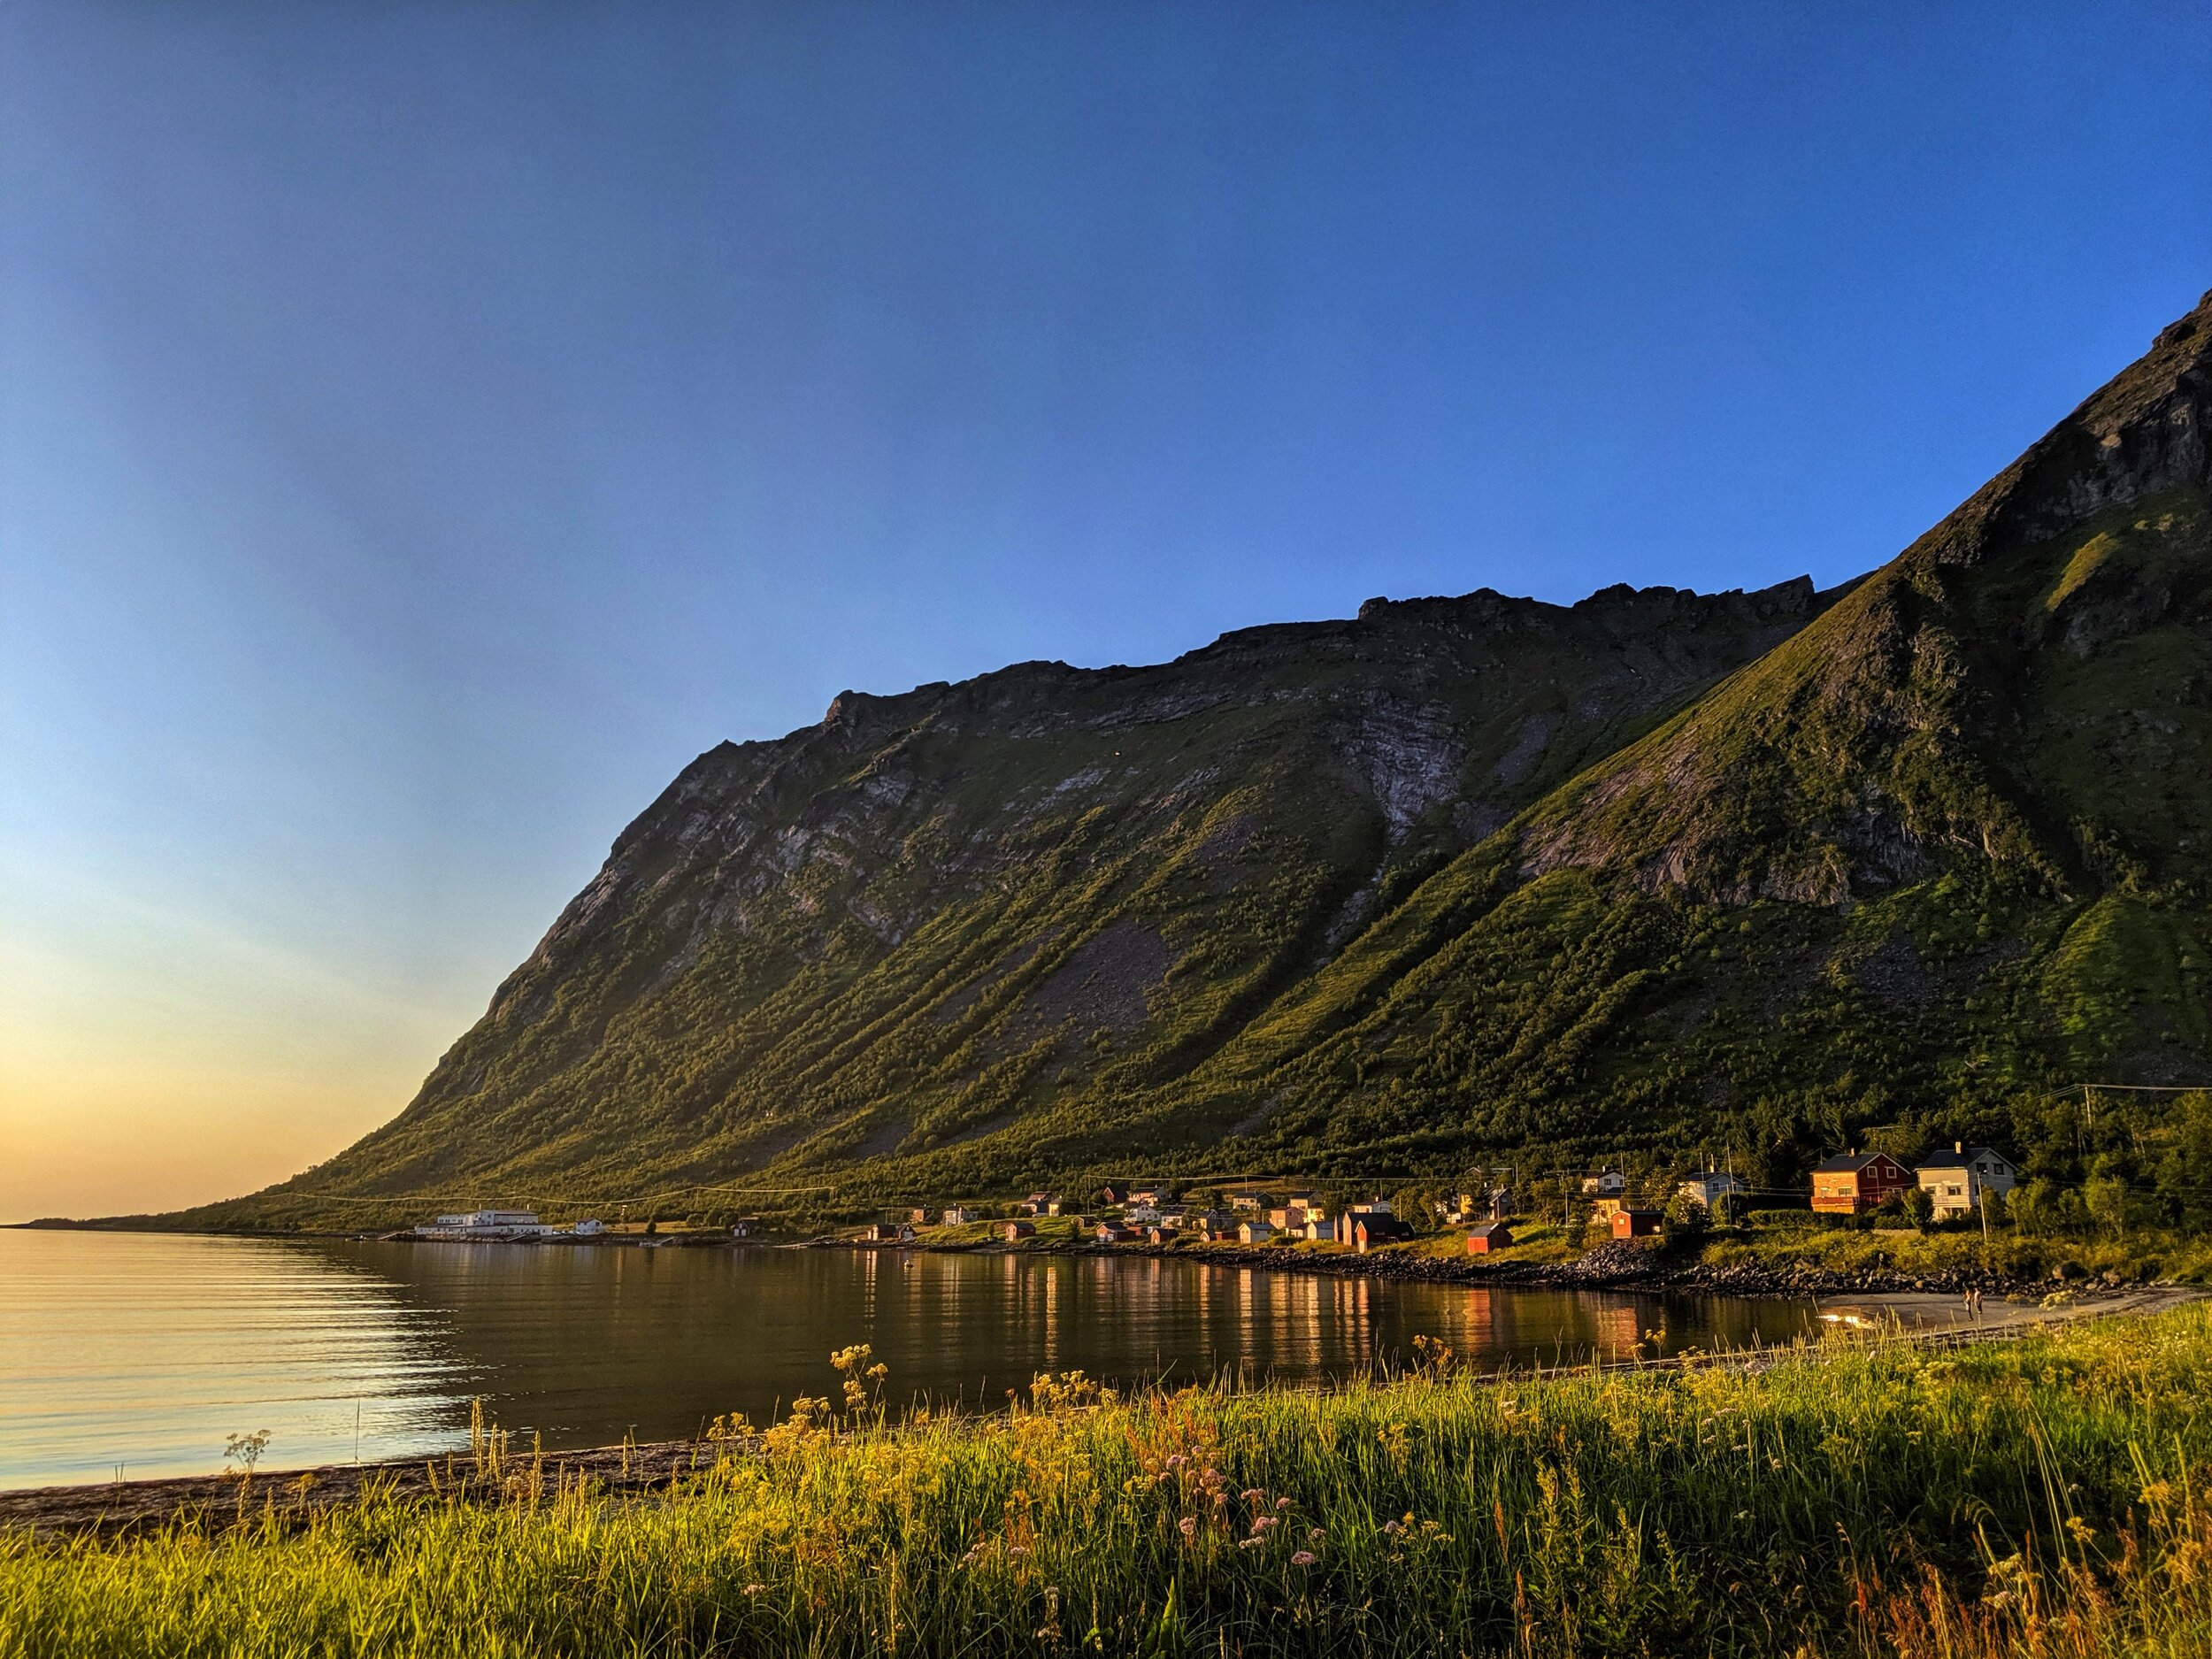 The fjord at midnight